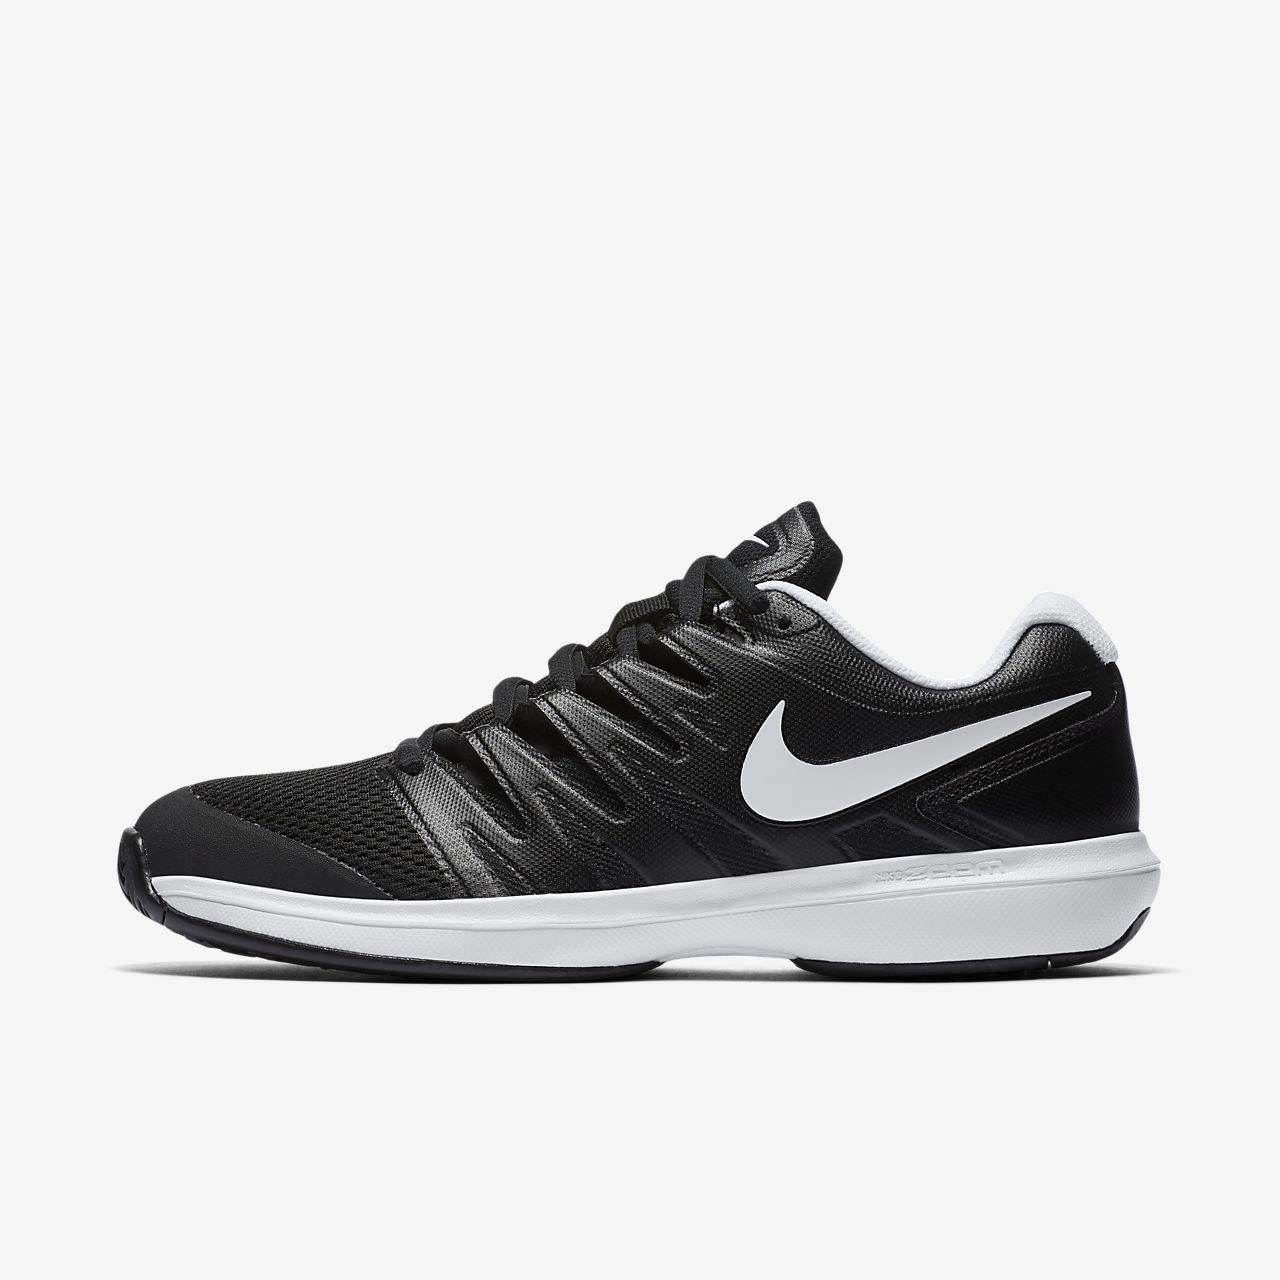 4821473f67b NikeCourt Air Zoom Prestige Men s Hard Court Tennis Shoe. Nike.com CA